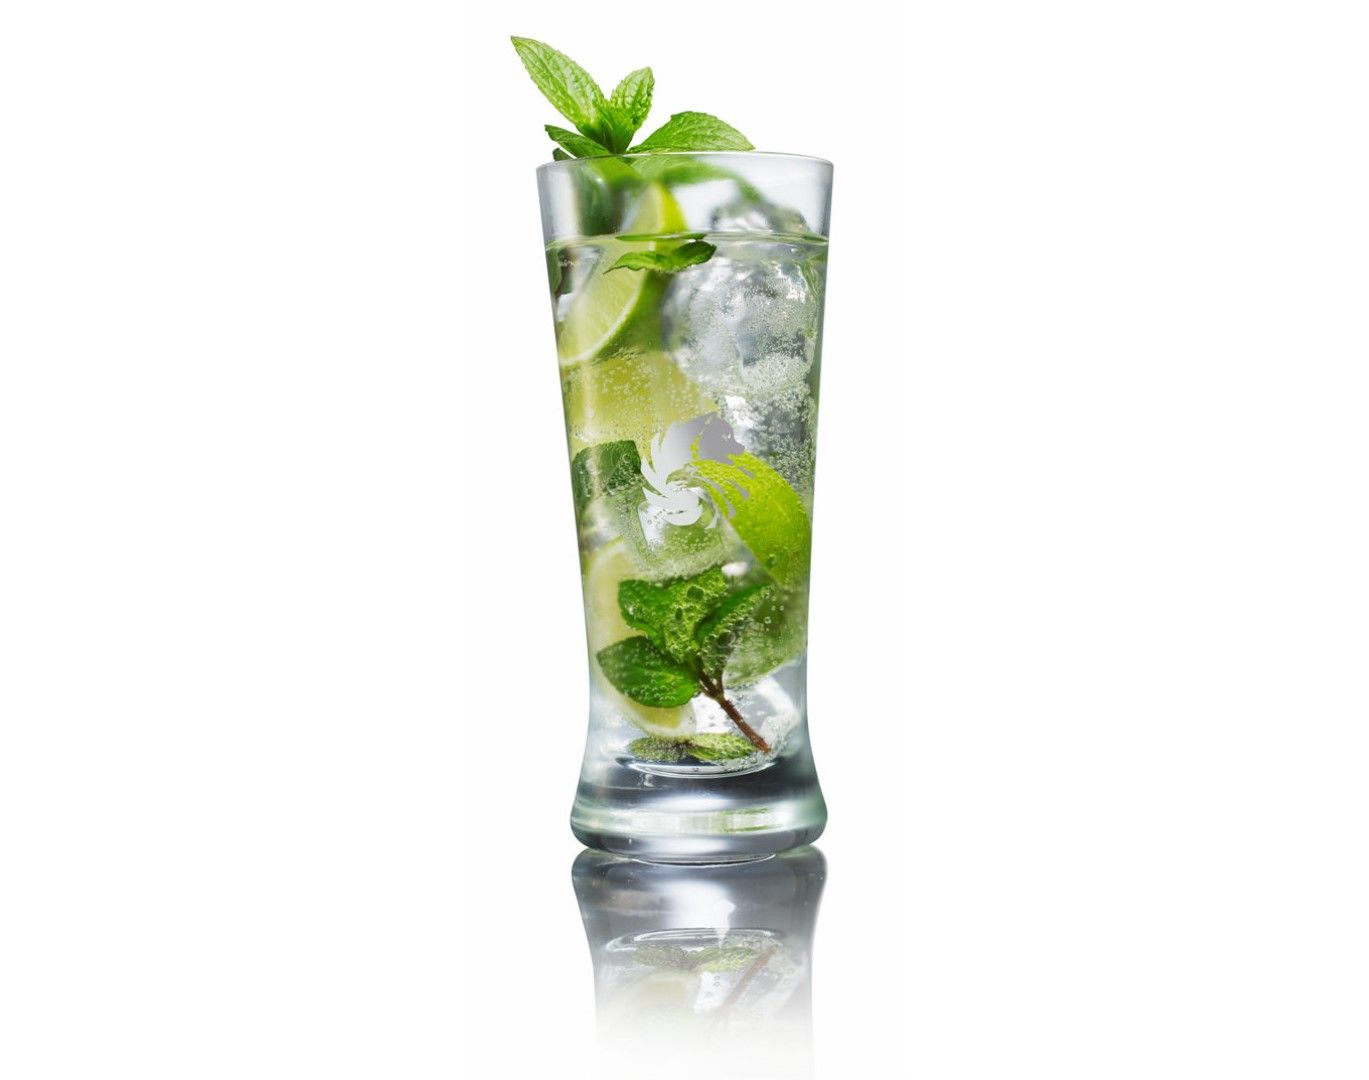 Mojito / Cocktail Recipe - Refreshing minty summer cocktail www.cocktail-db.com